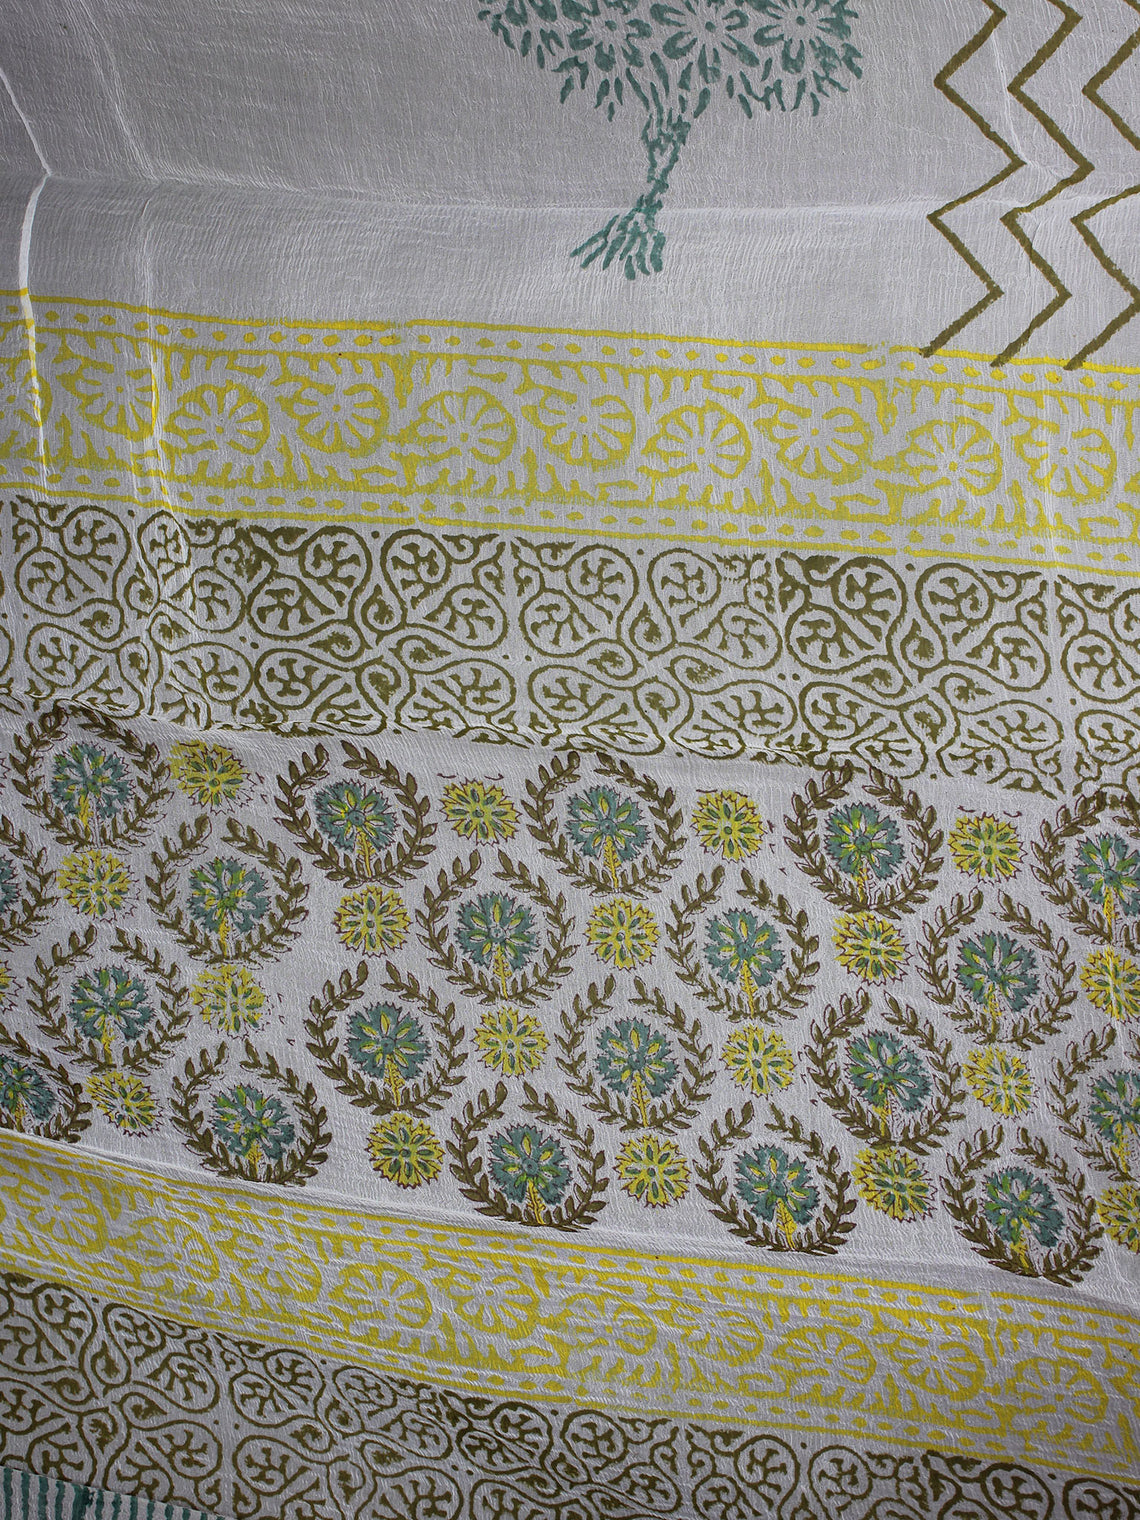 Seafoam Green Yellow Ivory Hand Block Printed Cotton Suit-Salwar Fabric With Chiffon Dupatta - S1628165